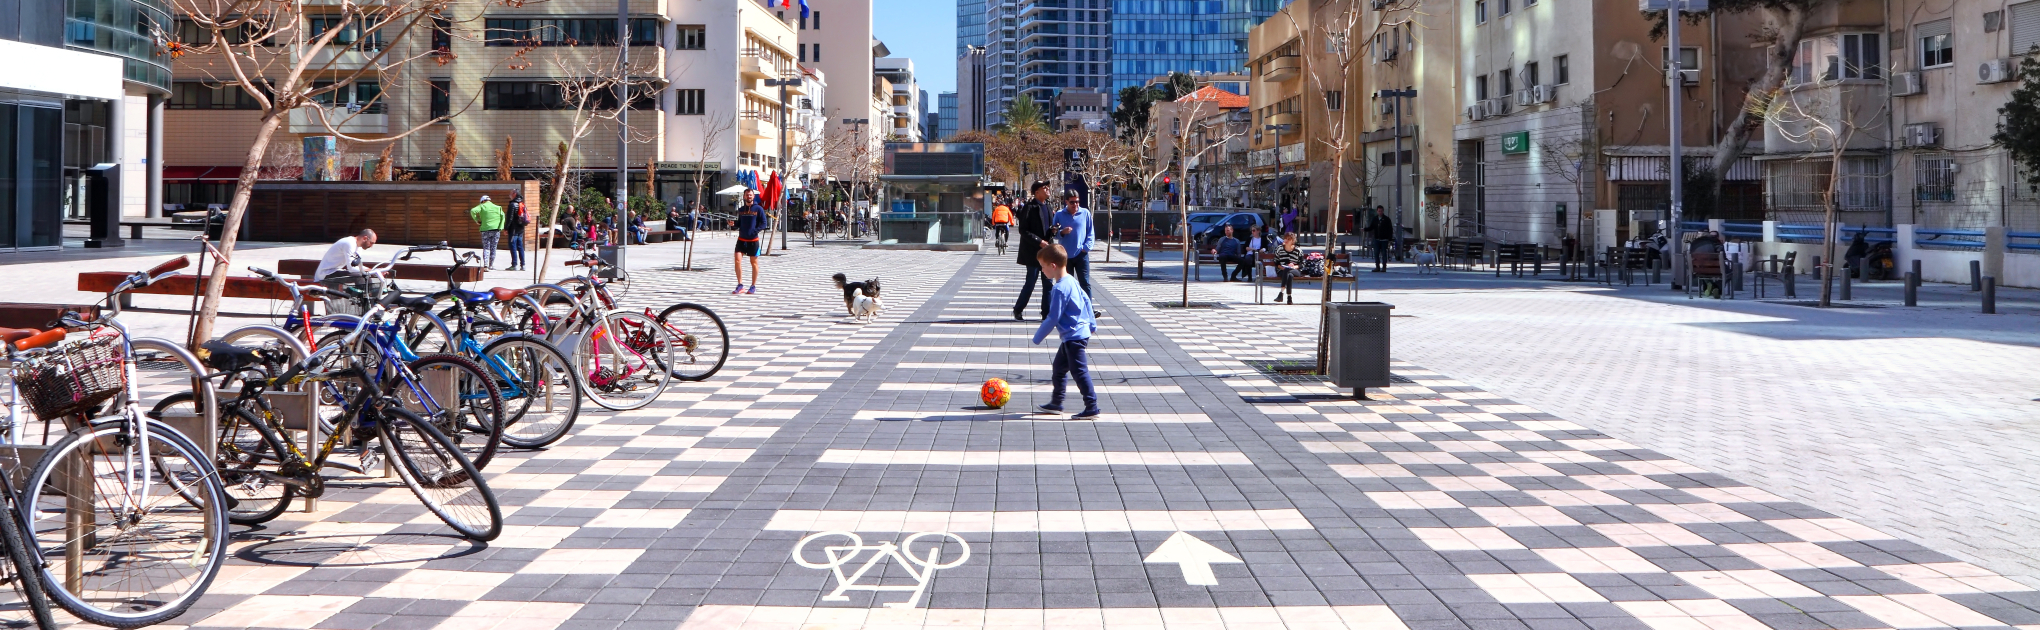 Cyclers children and pets inhabiting a paved square in Tel aviv